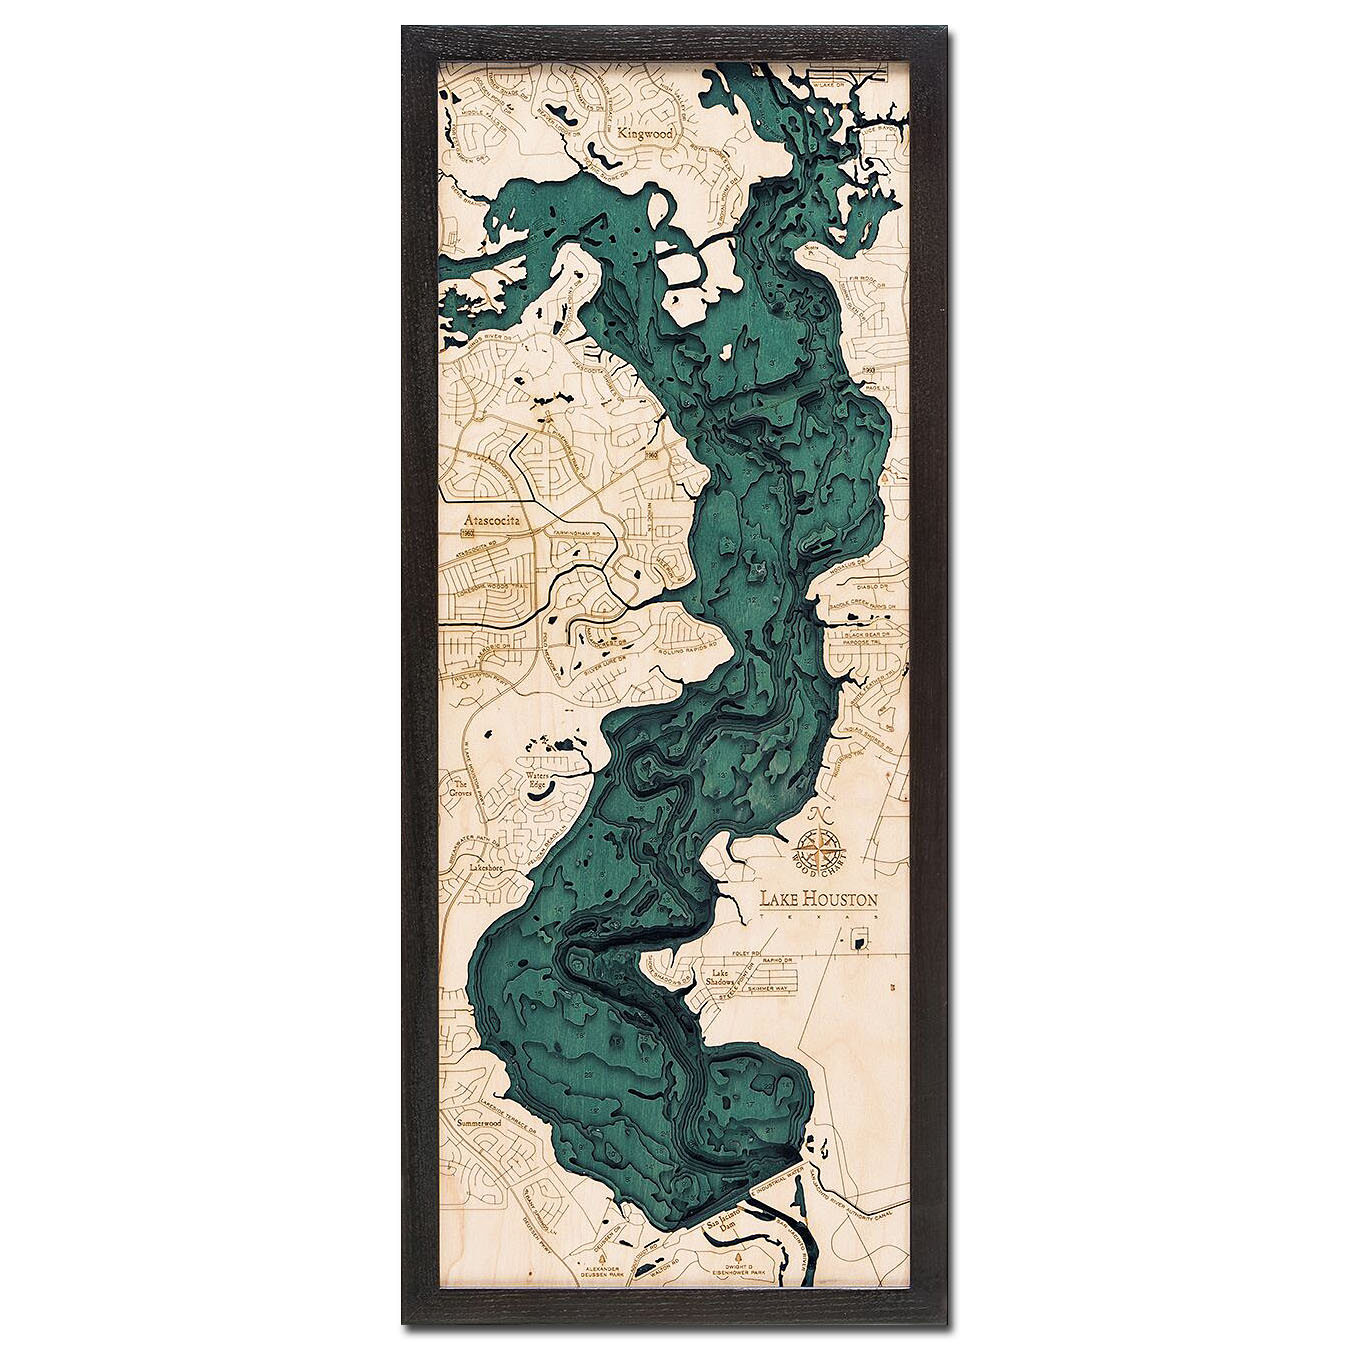 Lake Houston, TX 3D Wood Map | Framed 3D Topographic Wood Chart